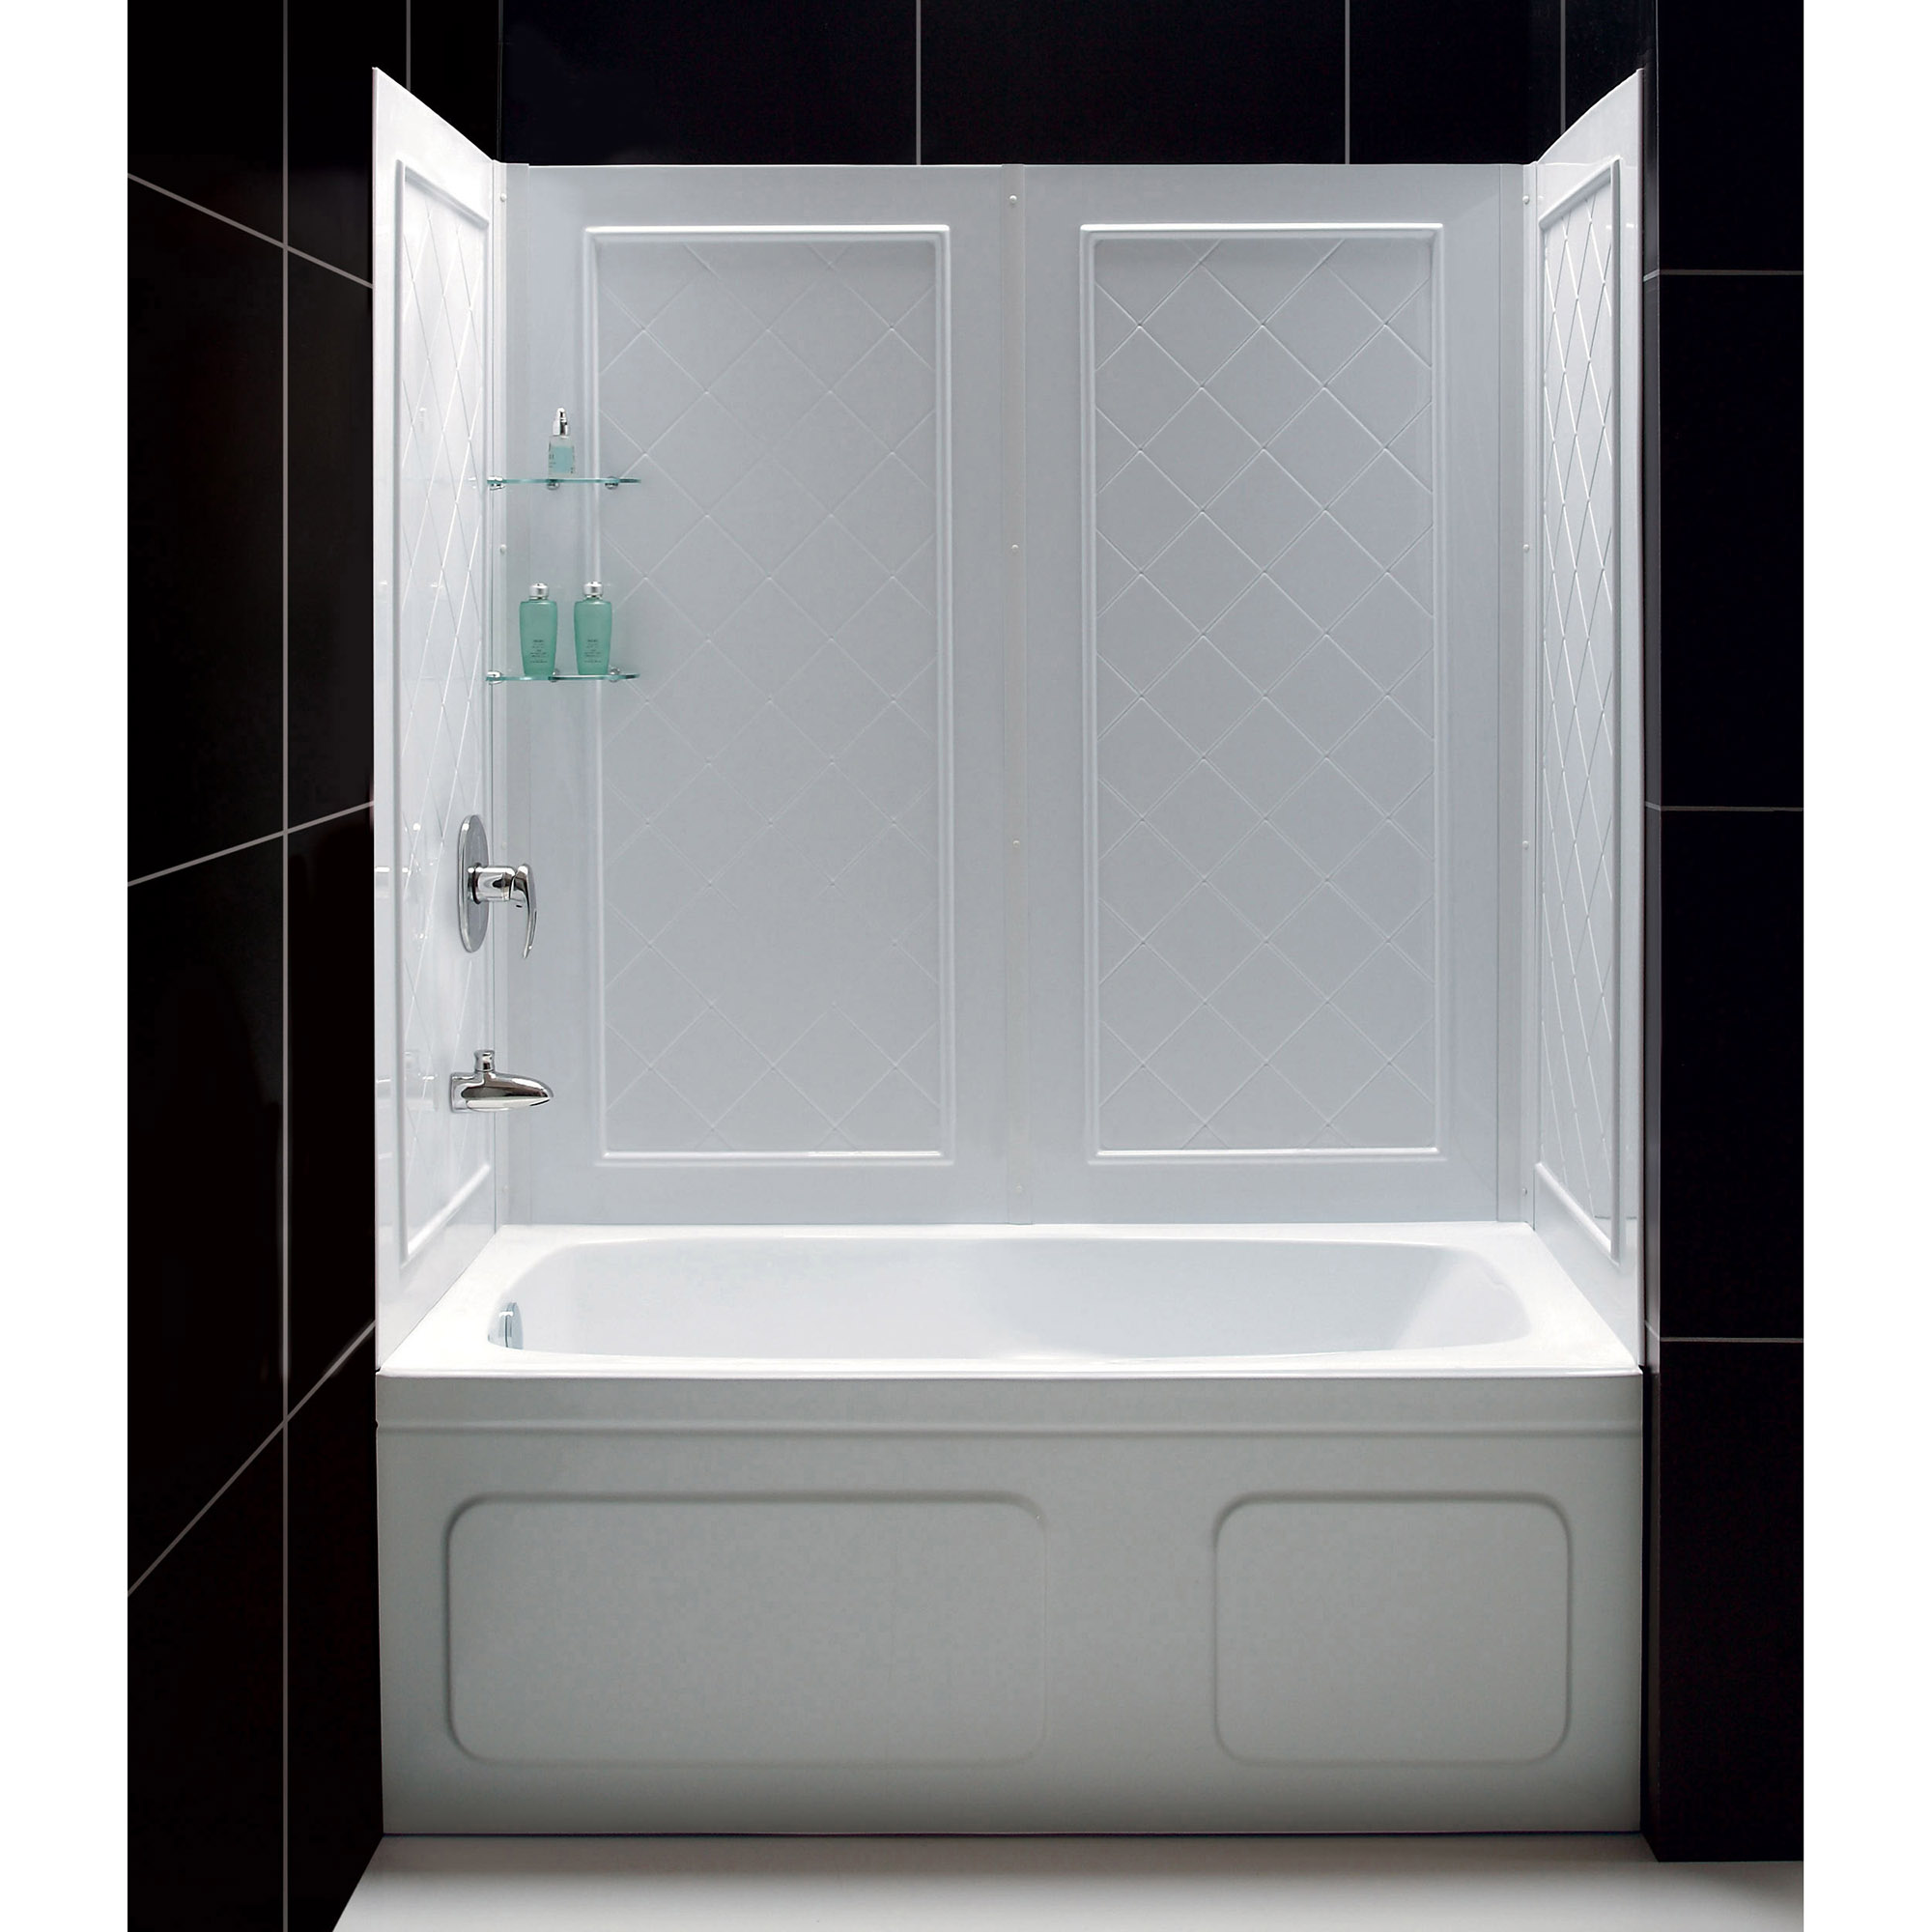 DreamLine QWALL-Tub 56-60 in. W x 28-32 in. D x 60 in. H Acrylic Backwall Kit In White